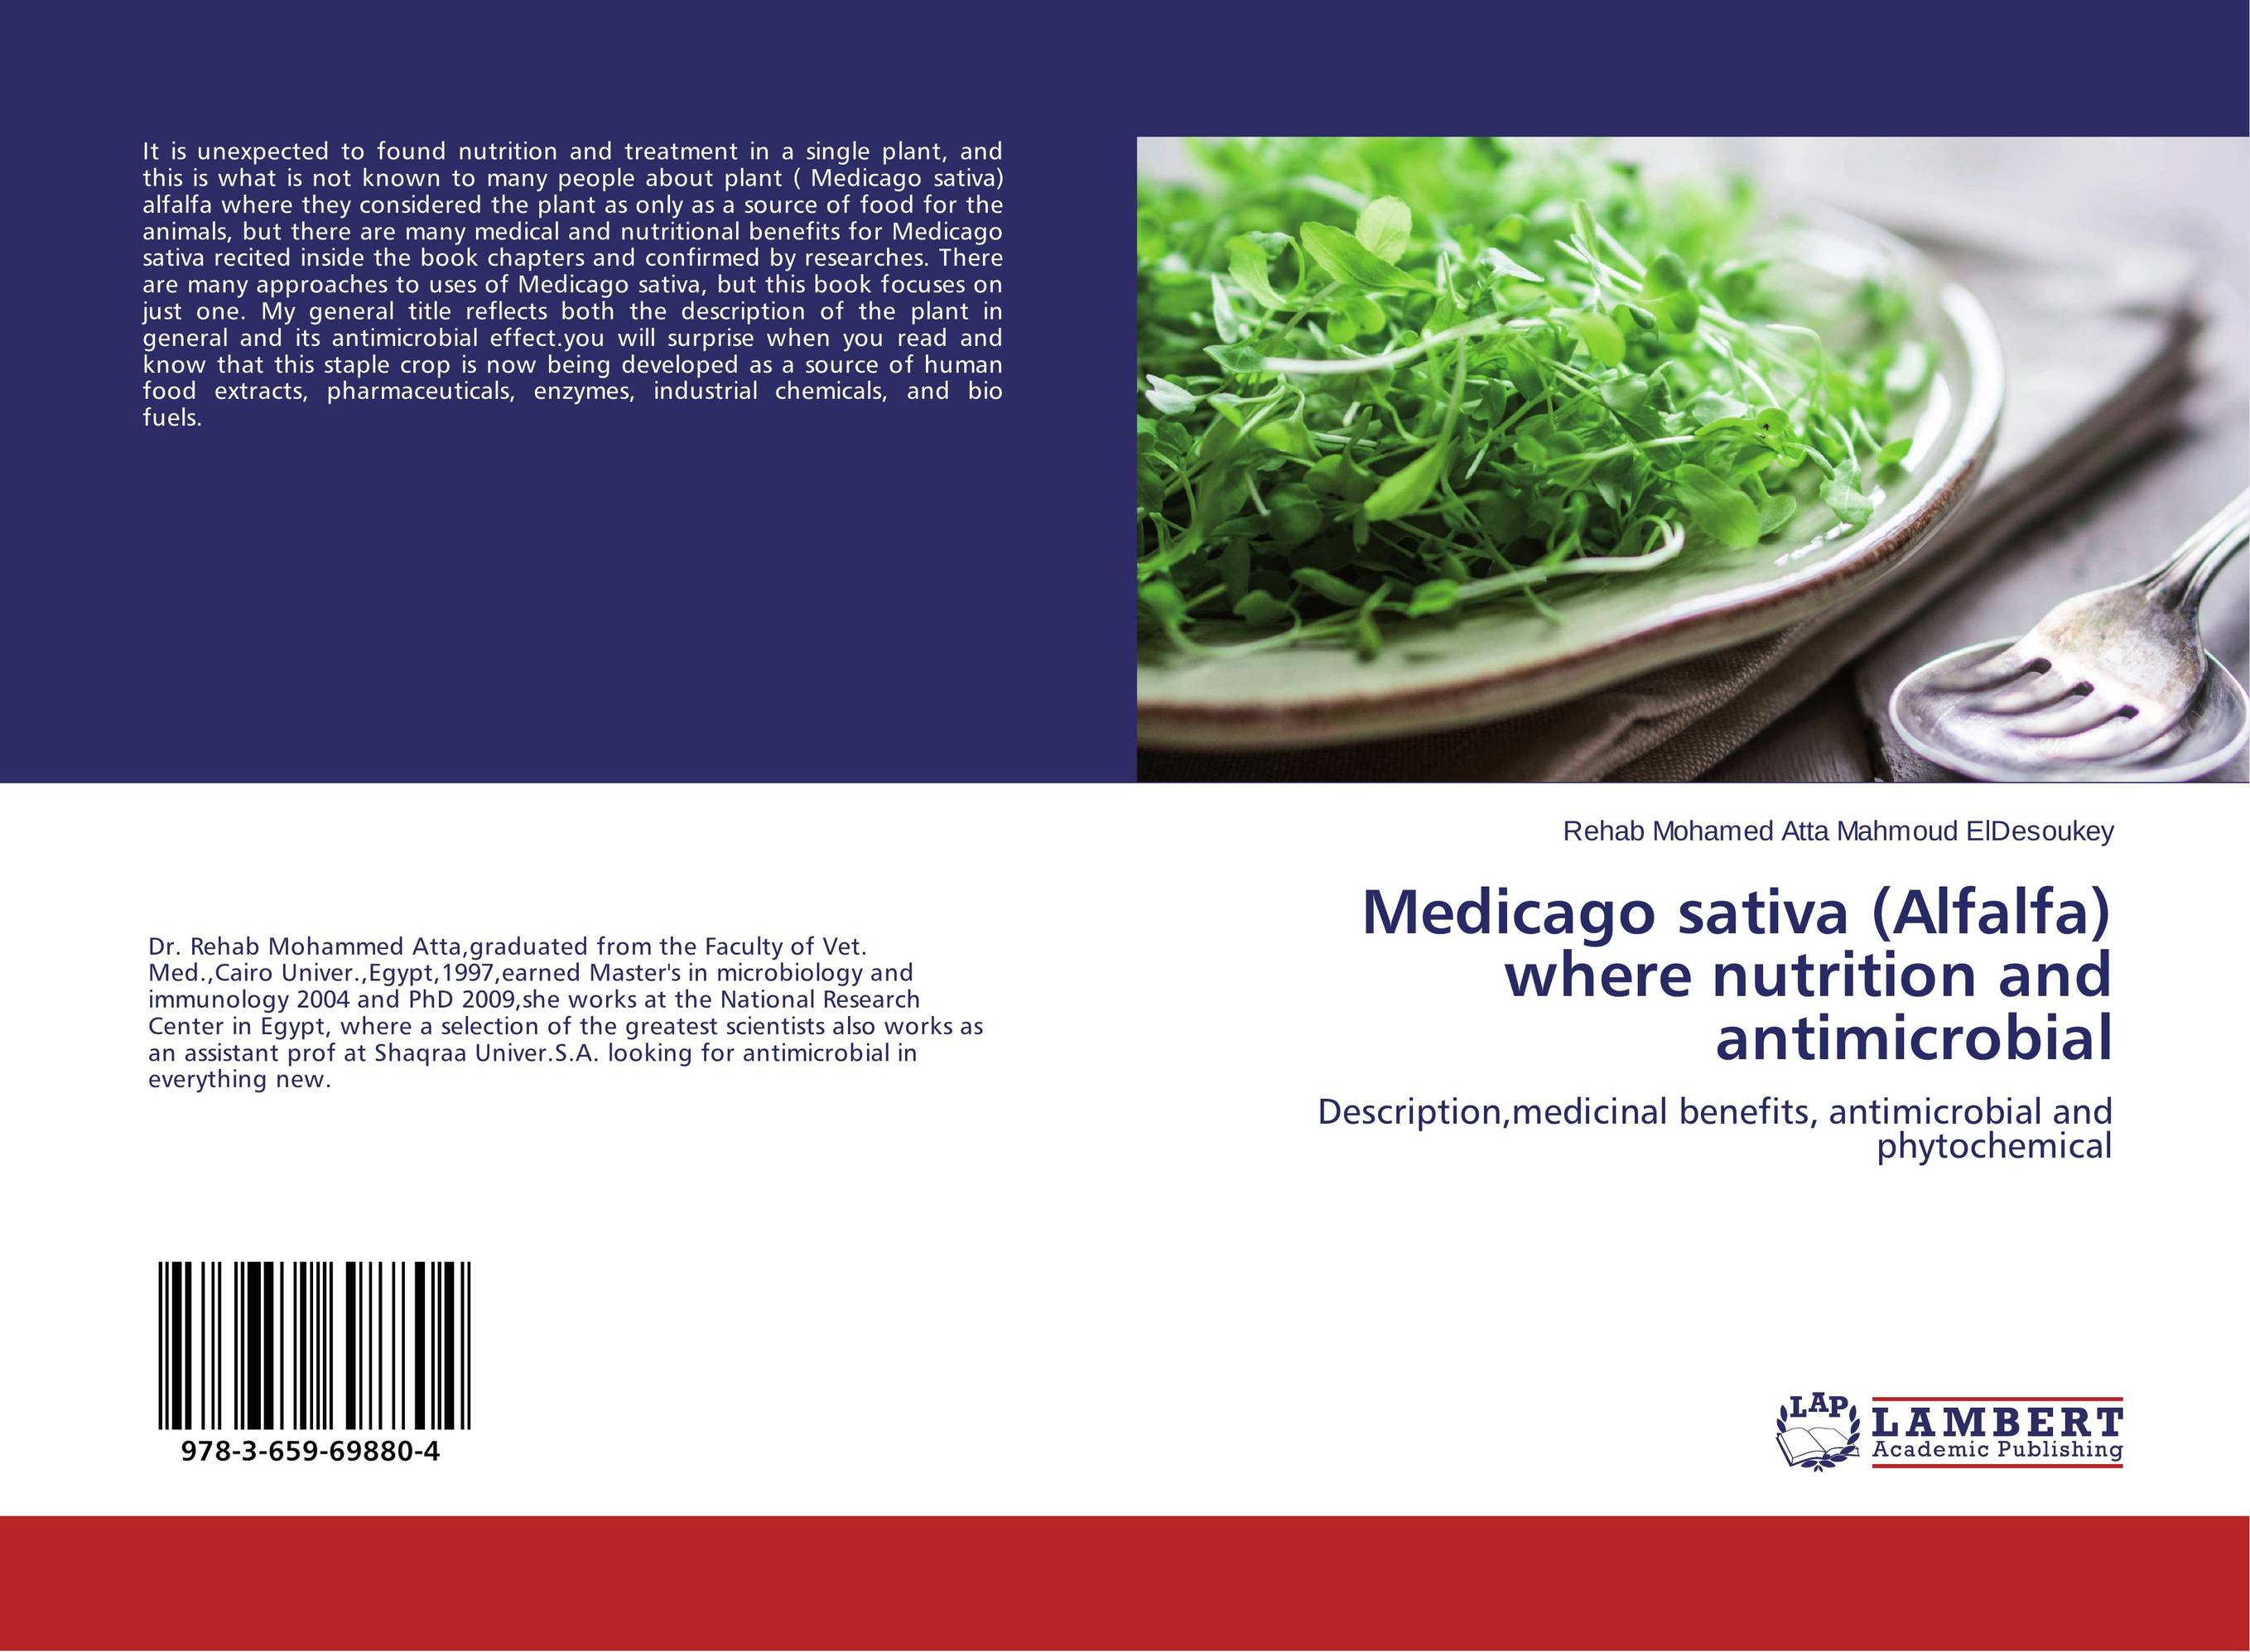 Medicago sativa (Alfalfa) where nutrition and antimicrobial plant mineral nutrition